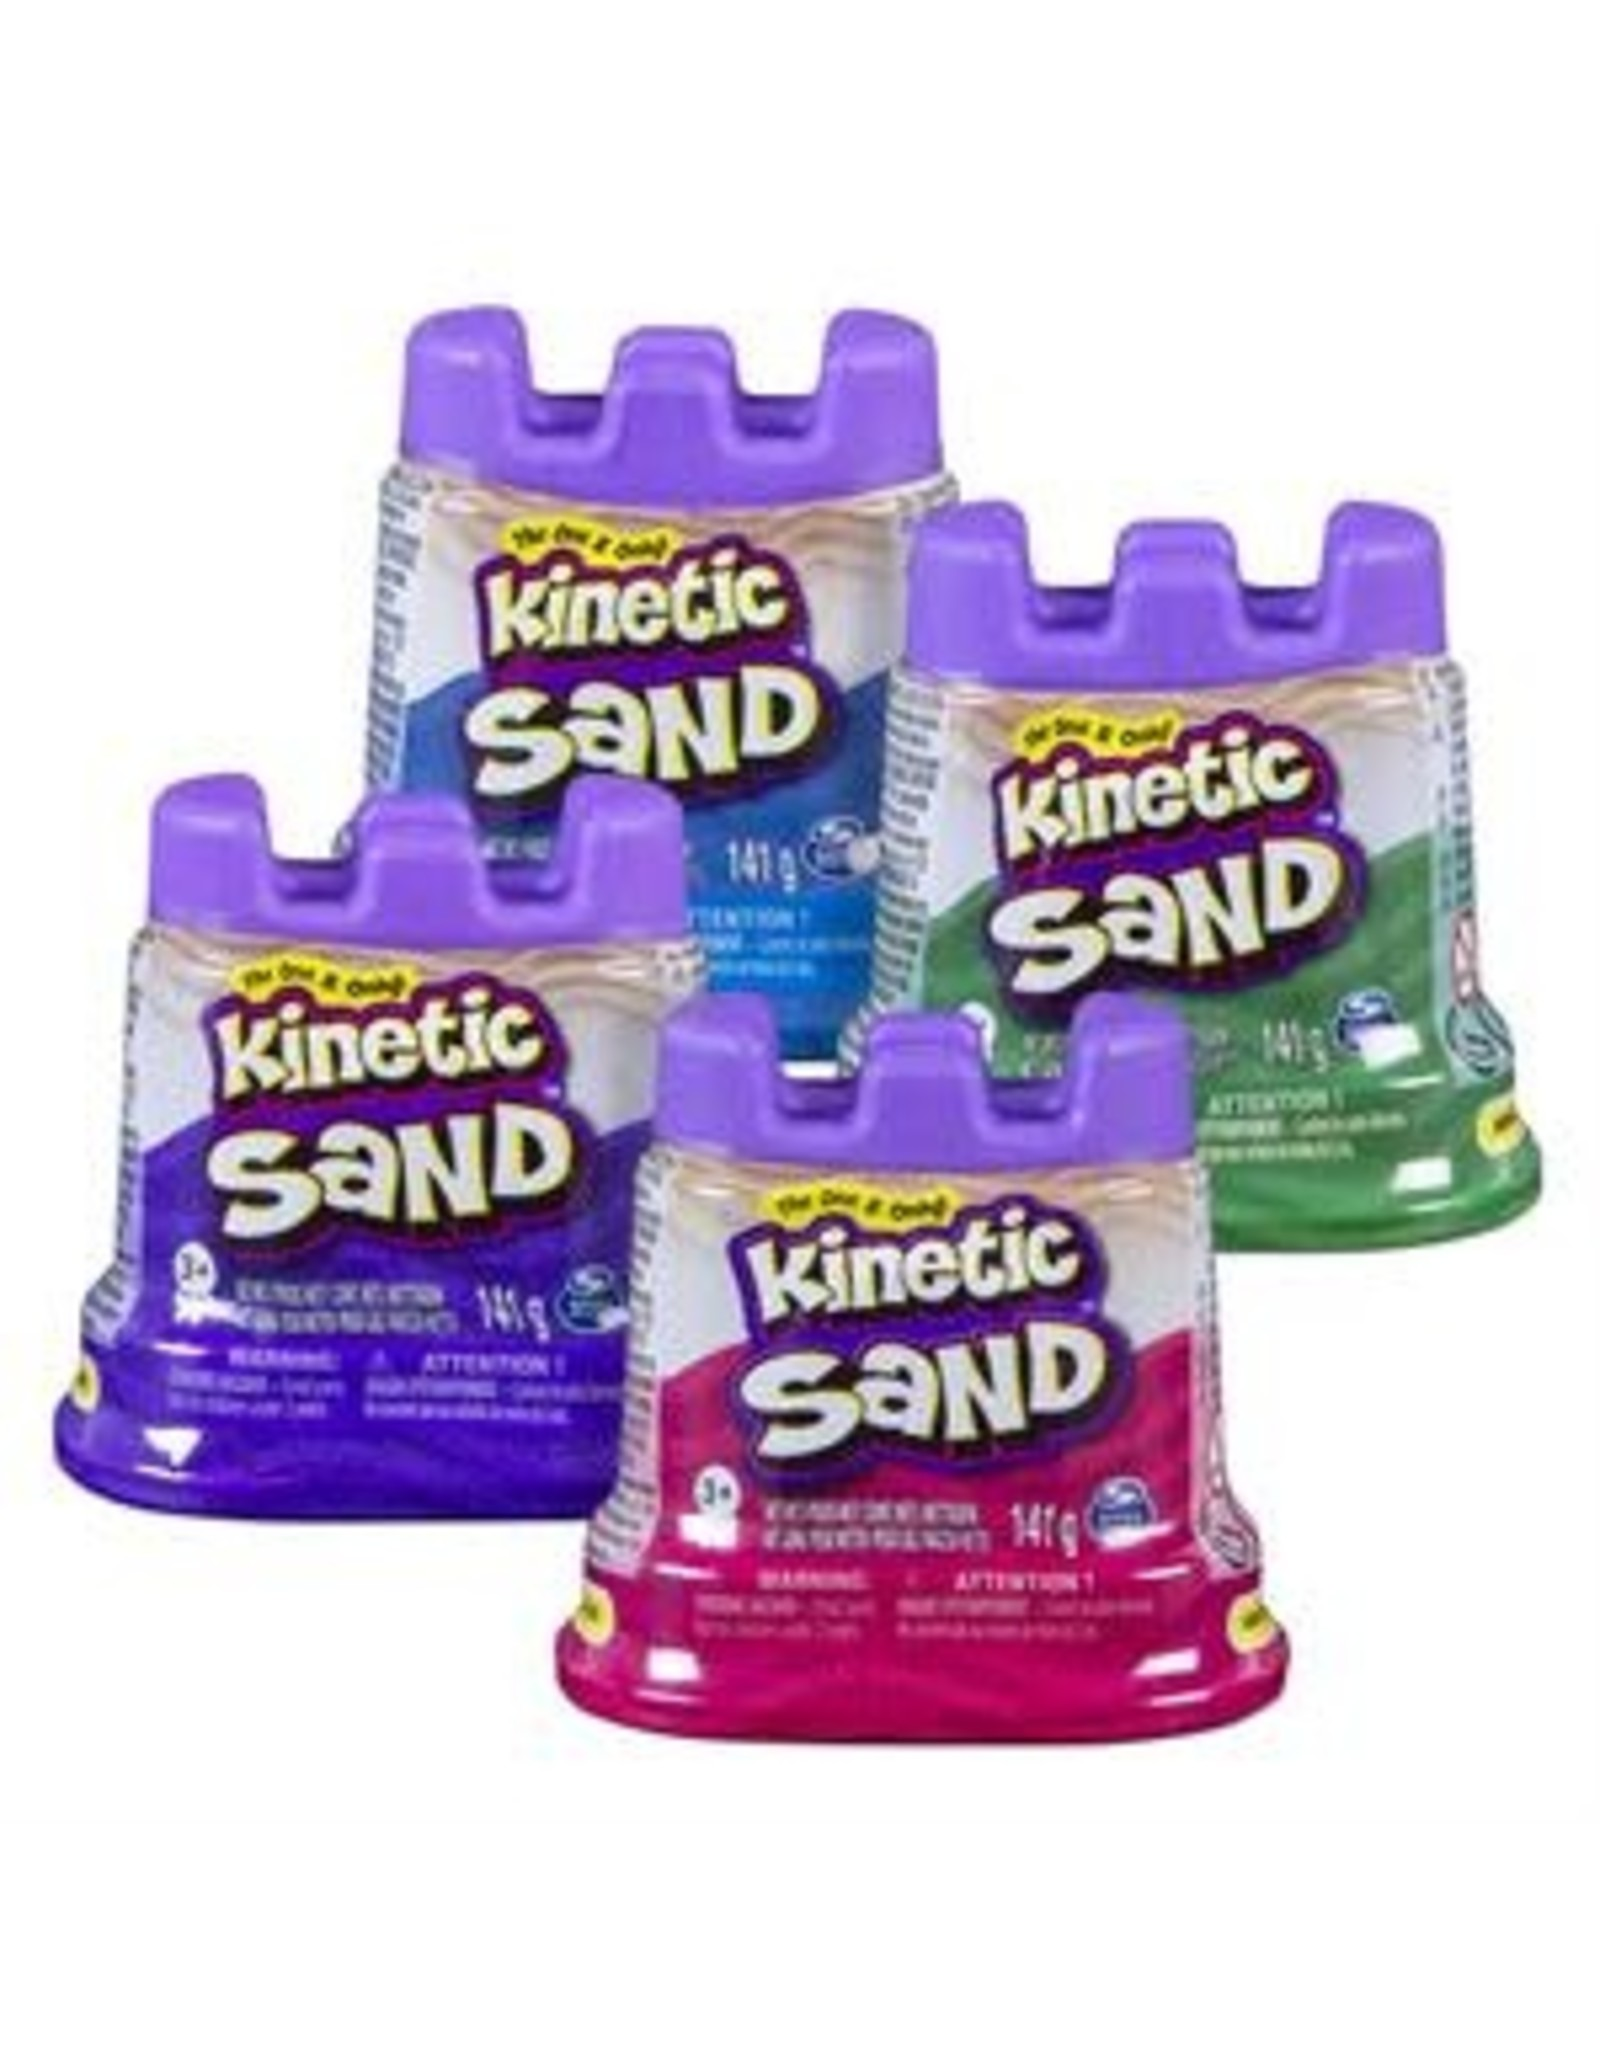 Gund/Spinmaster Kinetic Sand, Single Container 4.5oz